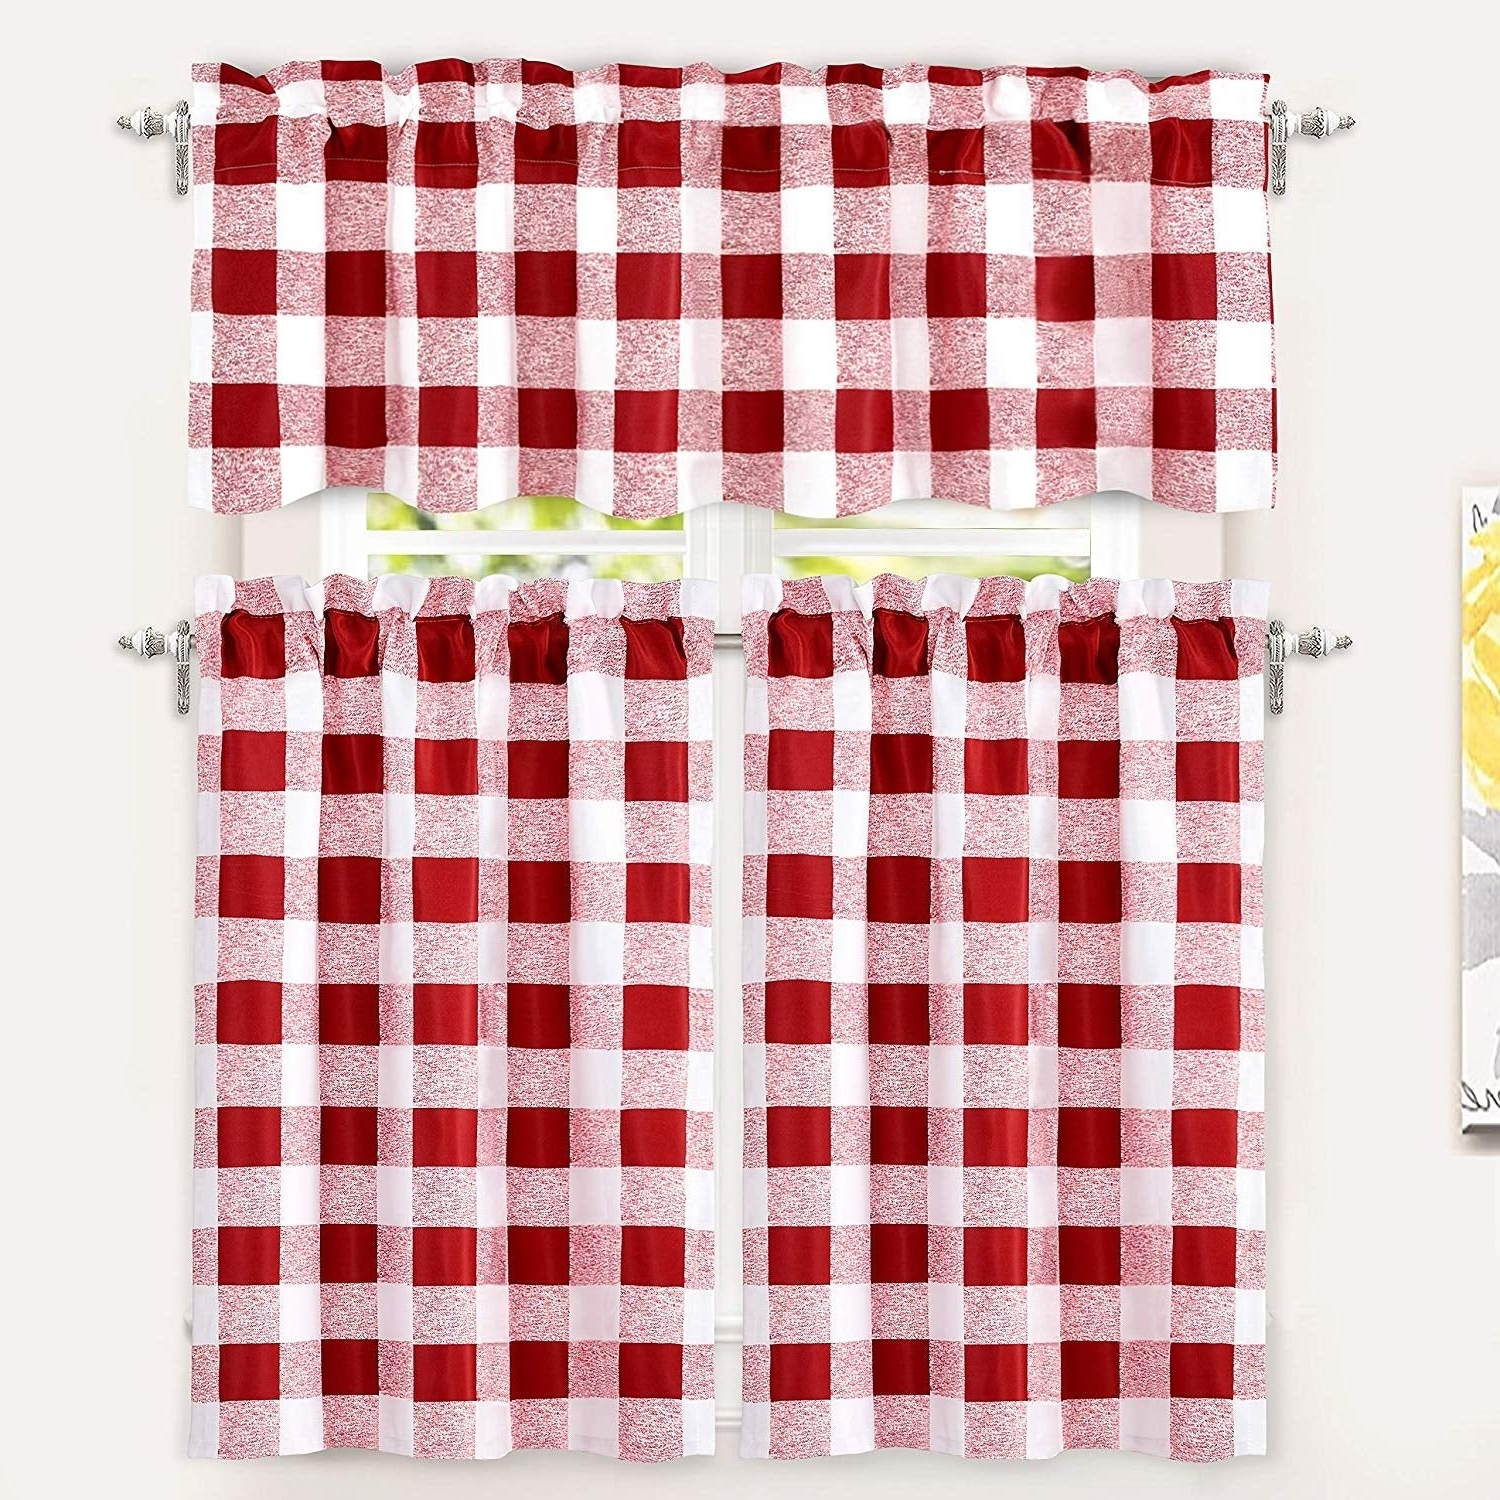 Best And Newest Lodge Plaid 3 Piece Kitchen Curtain Tier And Valance Sets Regarding Driftaway Buffalo Checker Plaid 3 Piece Kitchen Curtain Valance And Tiers Set (View 13 of 20)